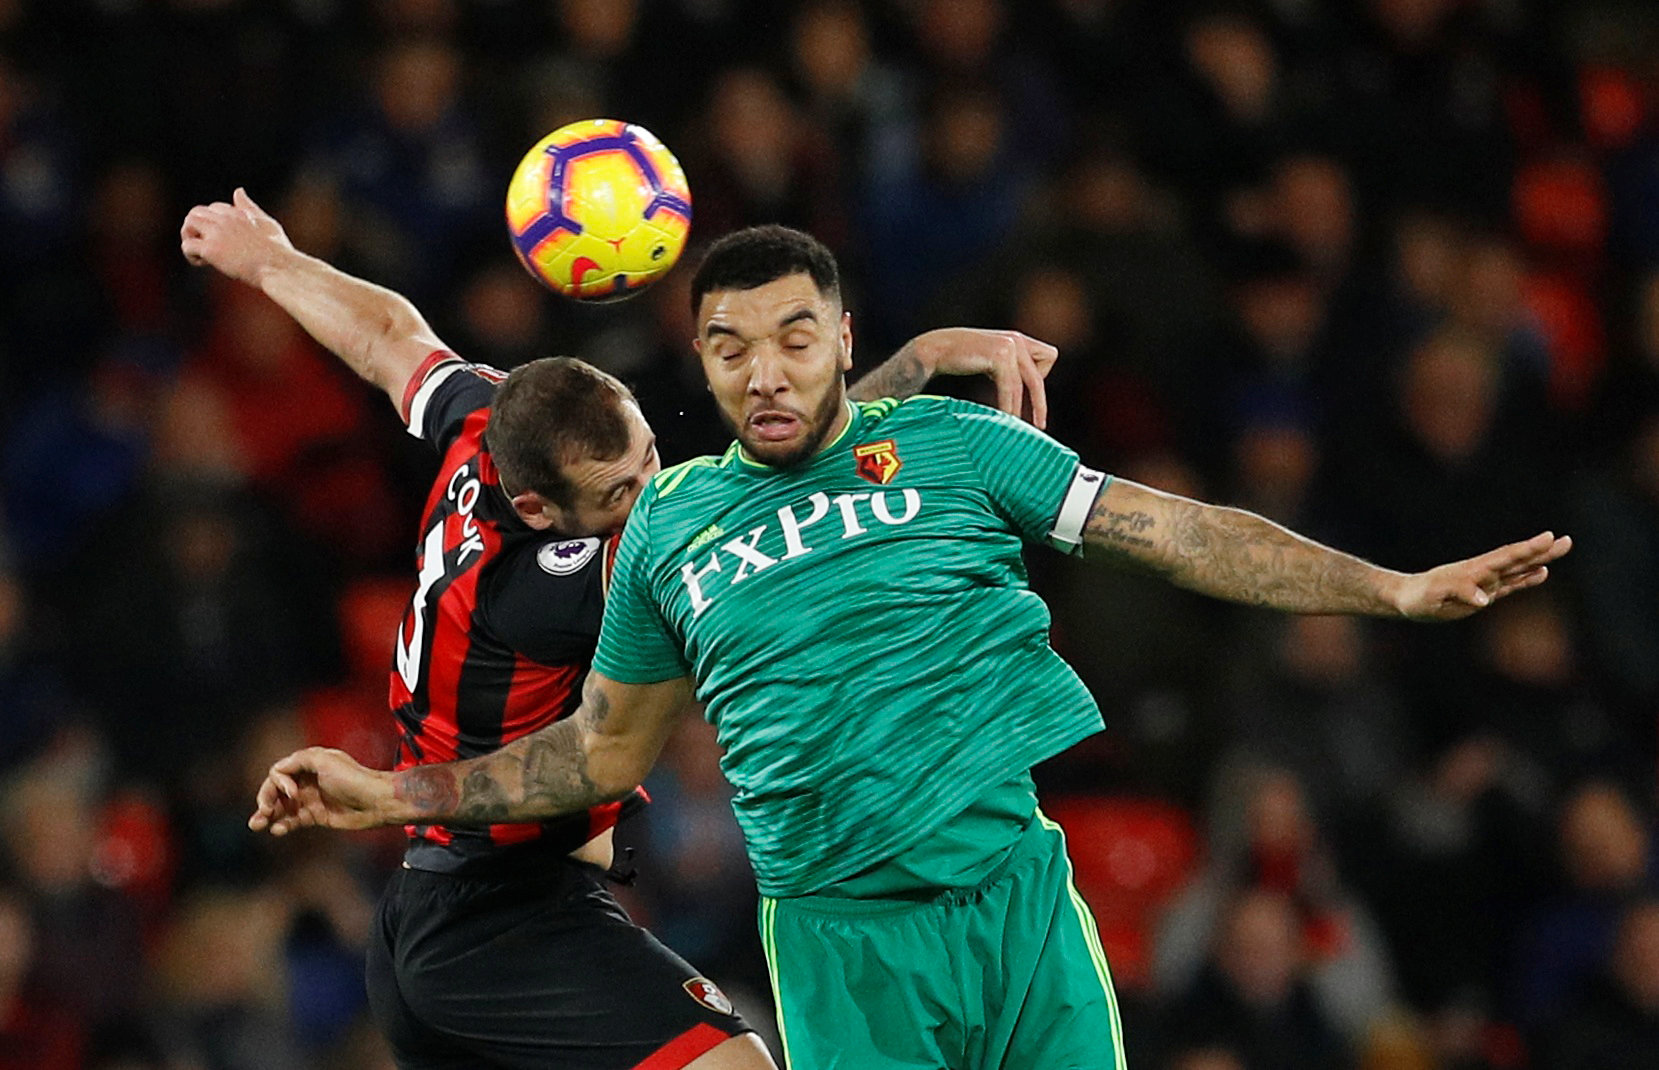 Watford and Bournemouth shared six goals at the Vitality Stadium. Credit: Action Images